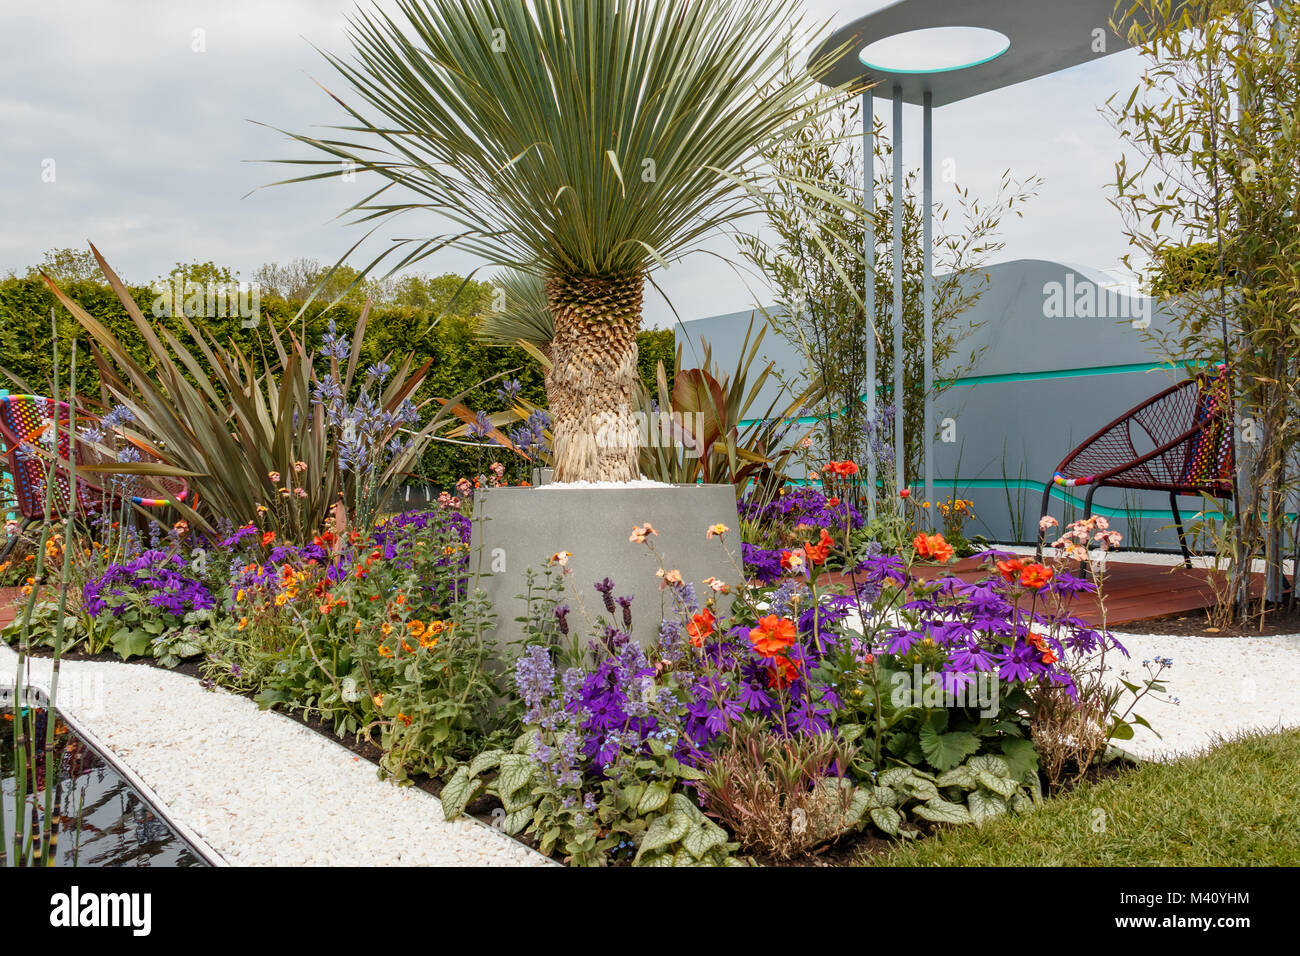 Bronze medal stock photos bronze medal stock images alamy for Portland spring home and garden show 2017